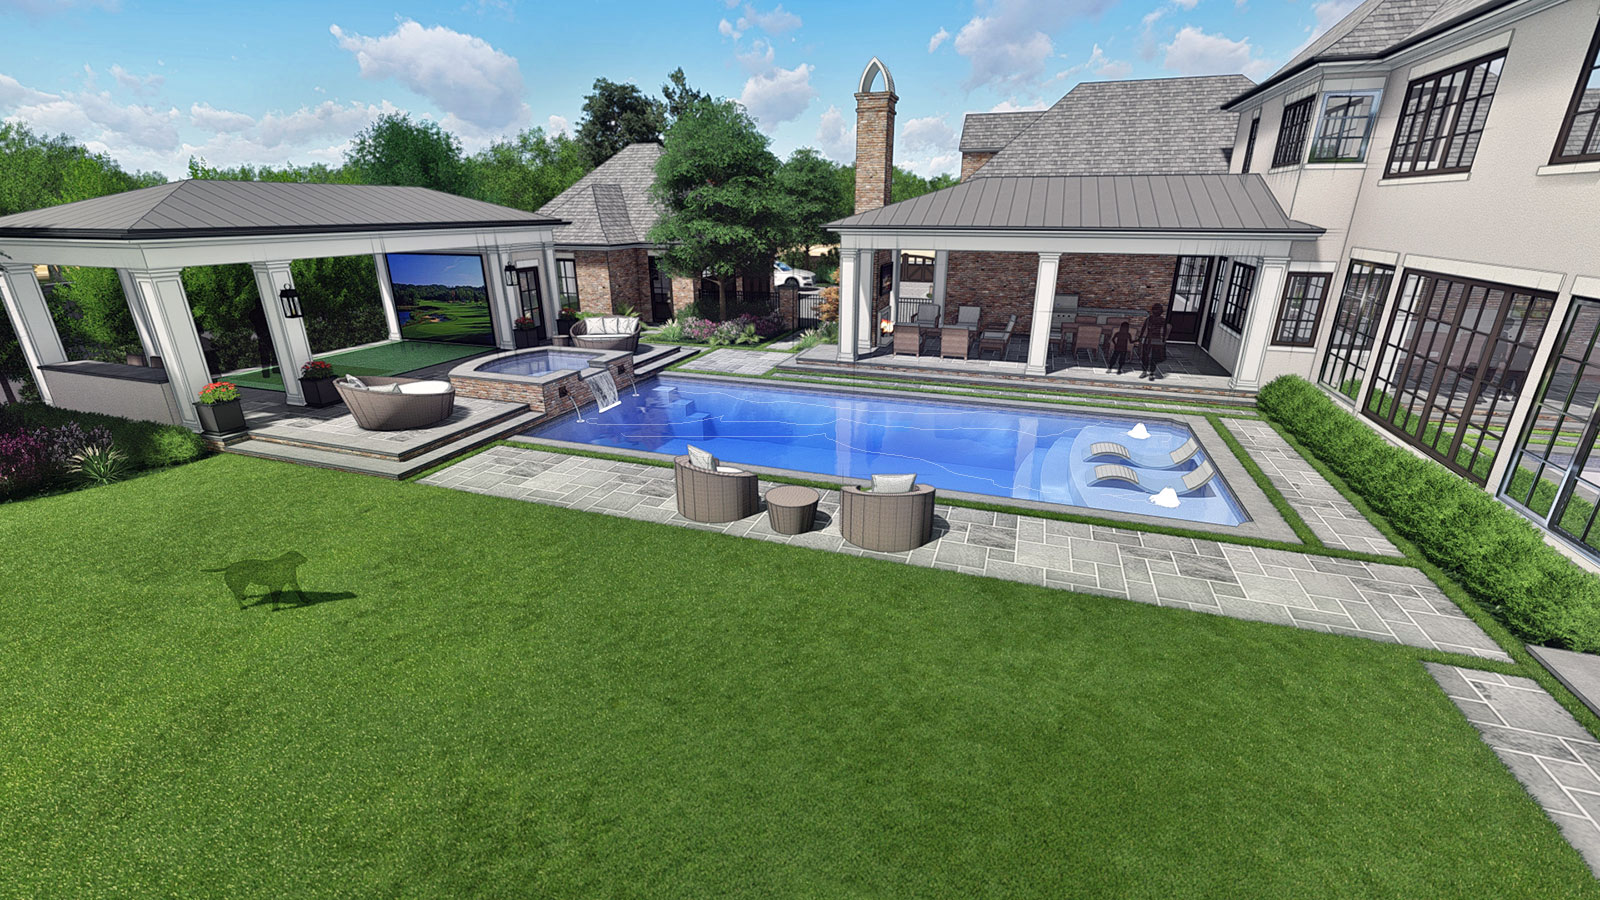 REAR LAWN & POOL AREA